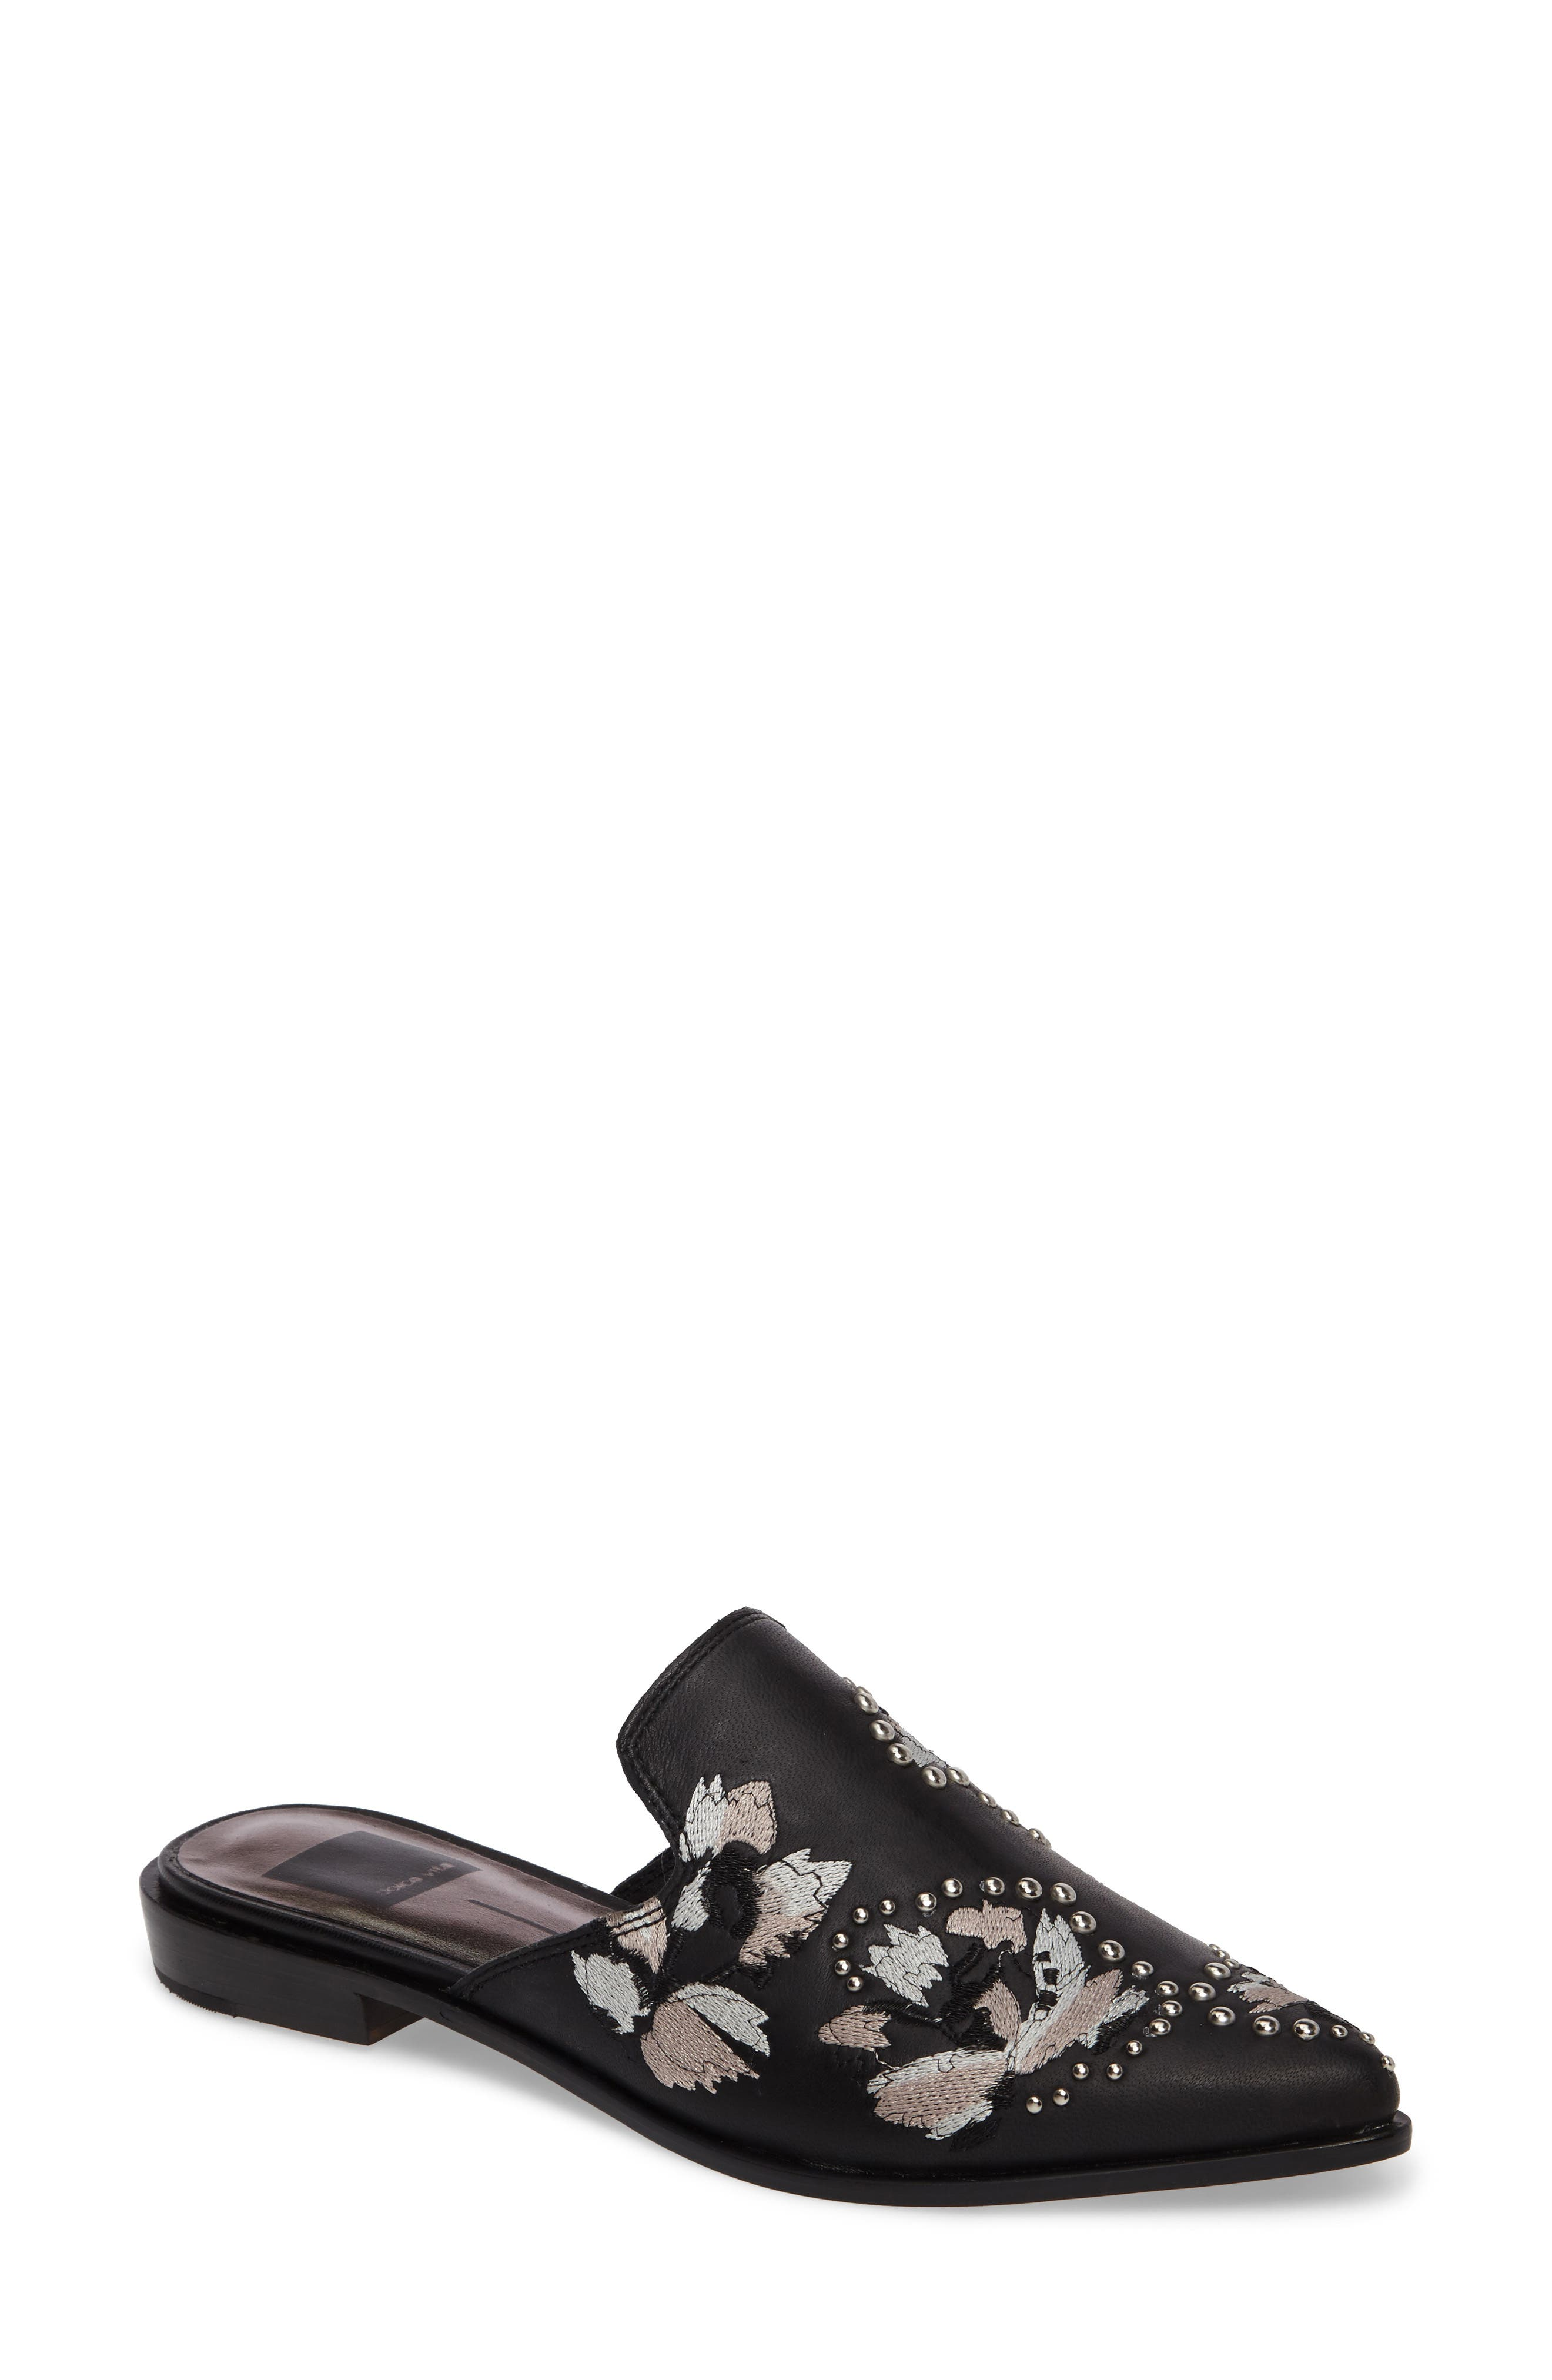 Harmony Embellished Loafer Mule,                             Main thumbnail 1, color,